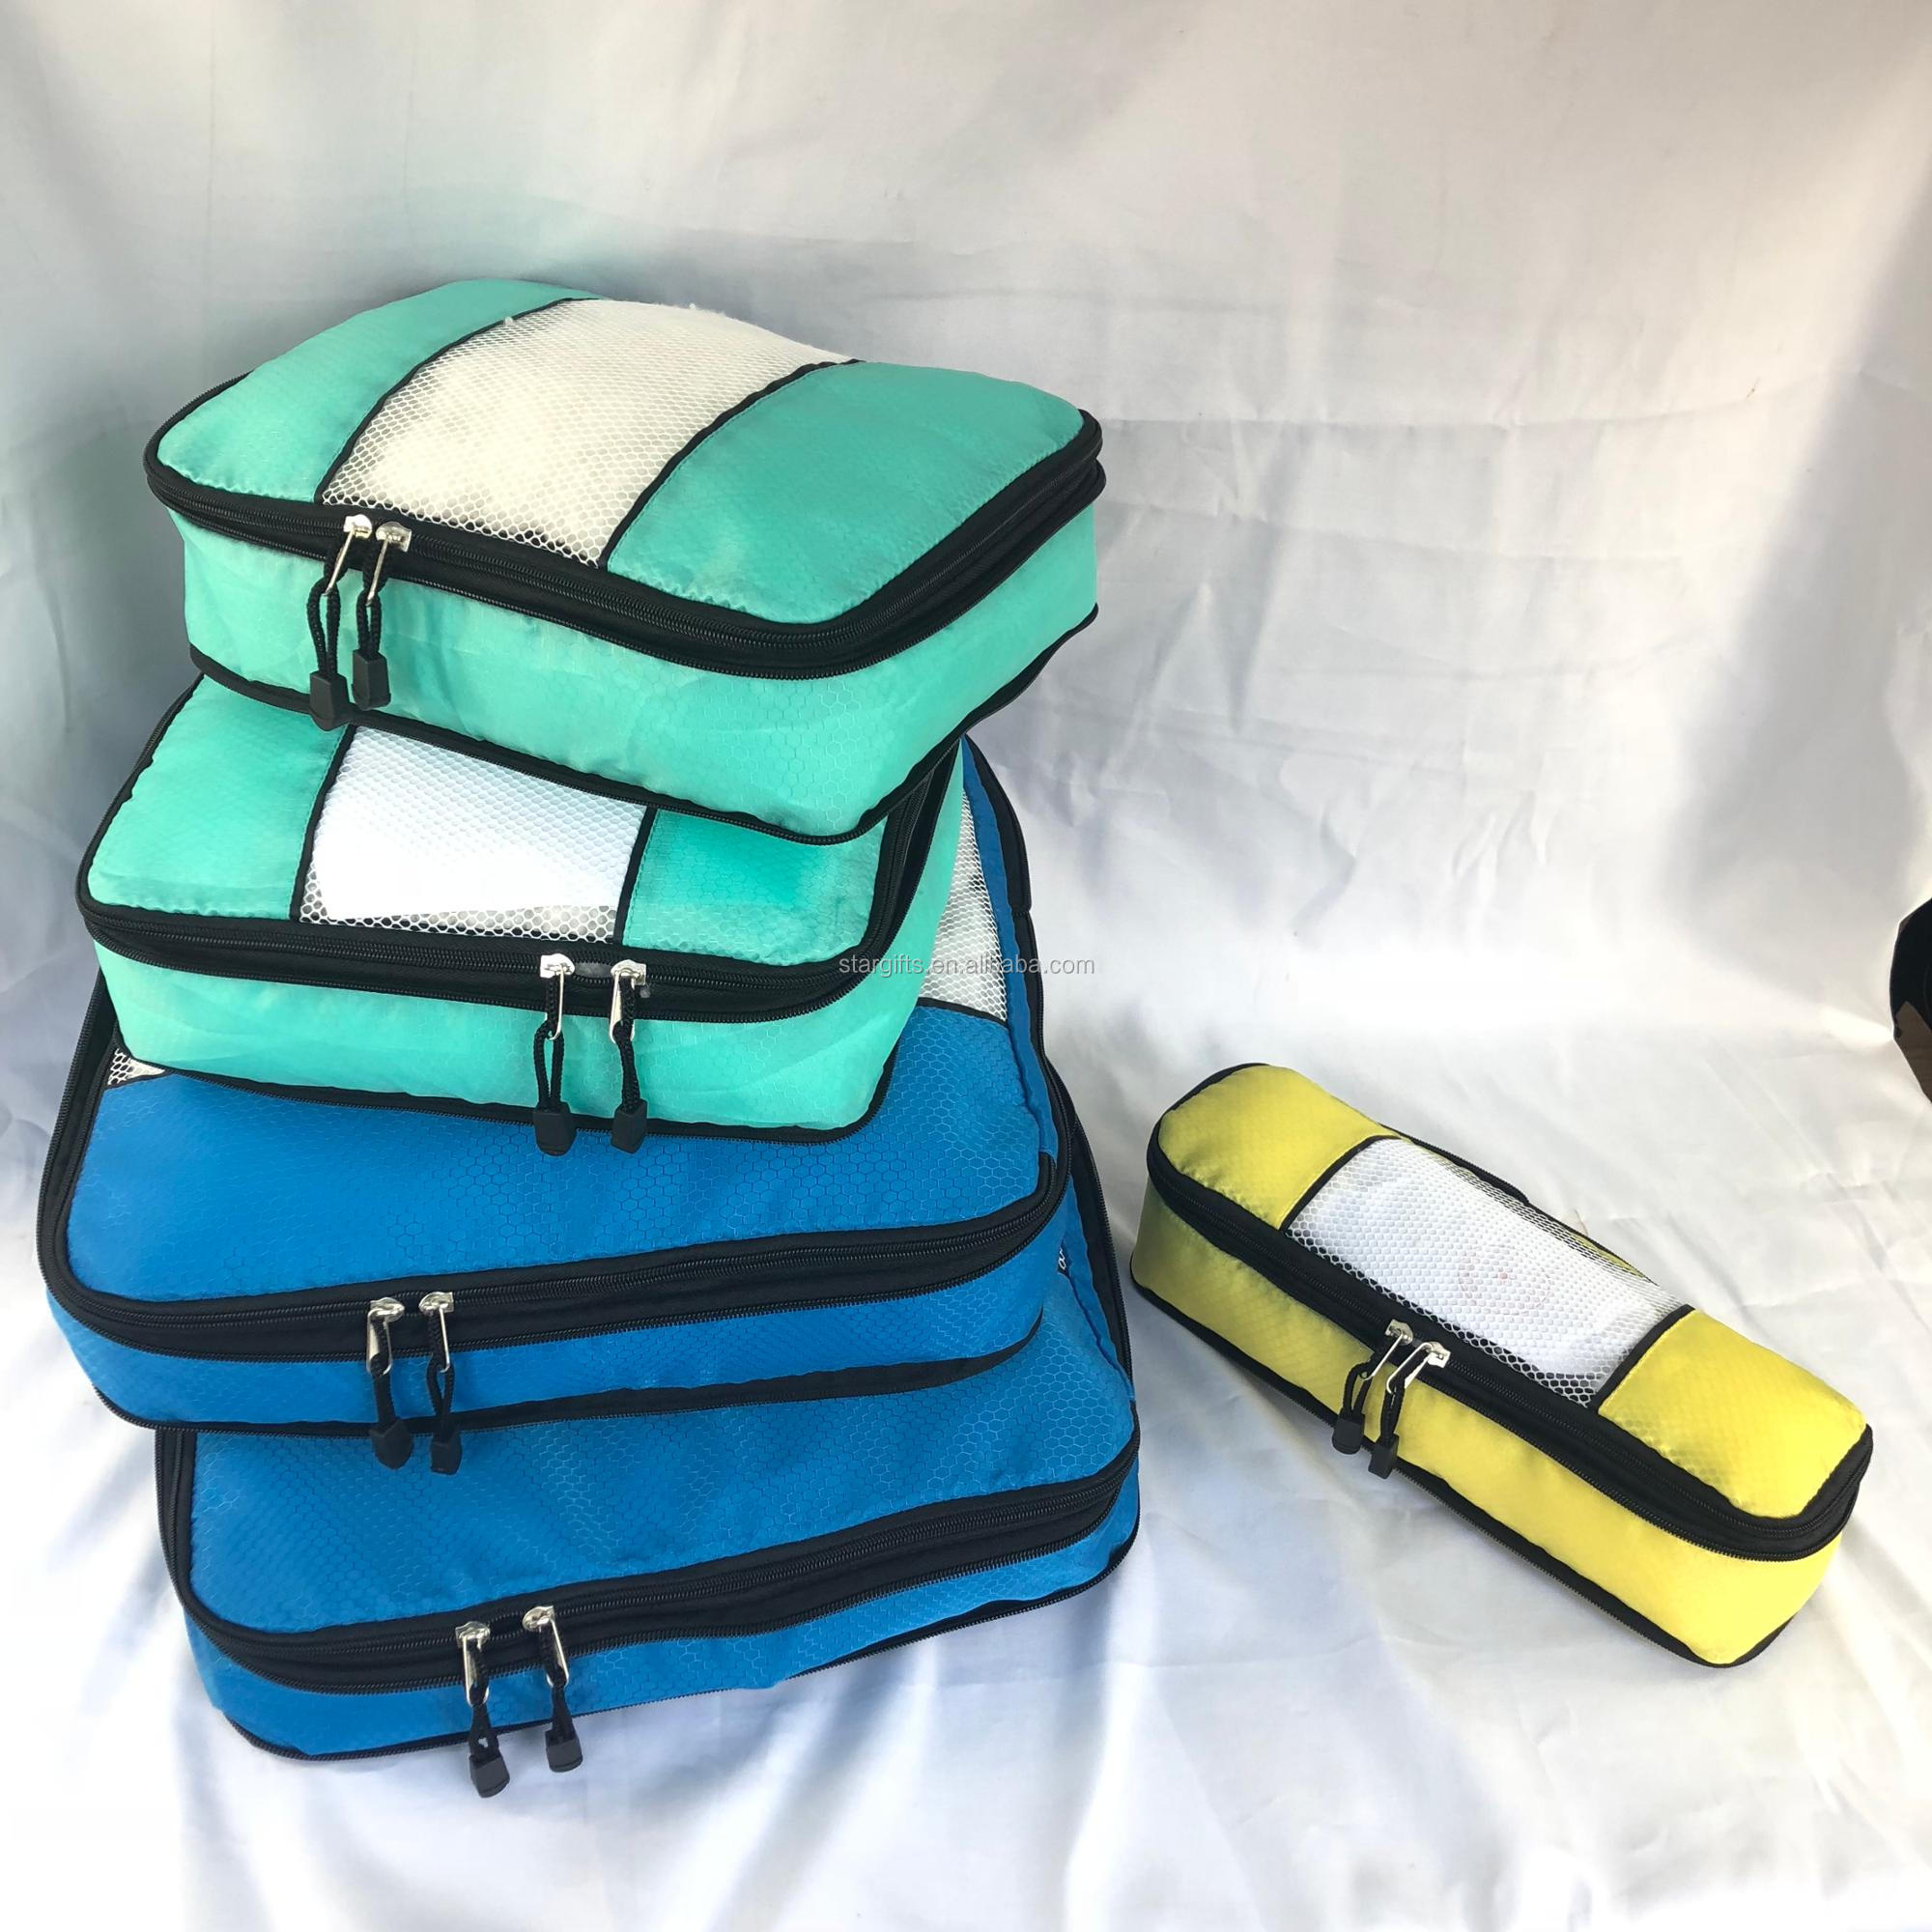 High Quality Travel Organizers Luggage Carry on Nylon Packing Cubes With Shoe Bag